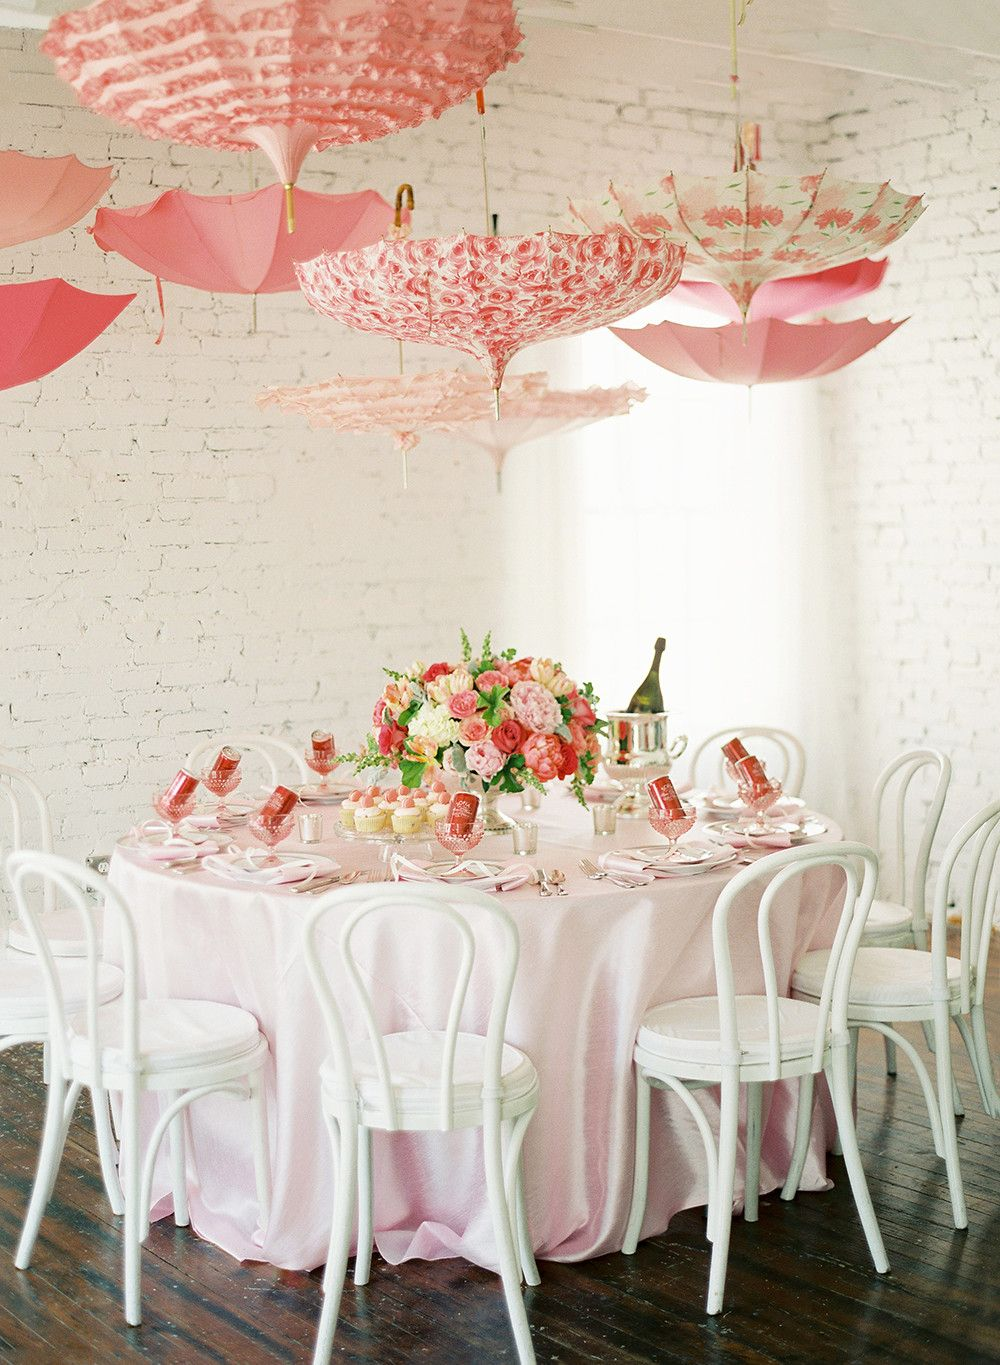 Garden decor for baby shower  Pink Bridal Shower Ideas and Decorations We Love  cc  Pinterest